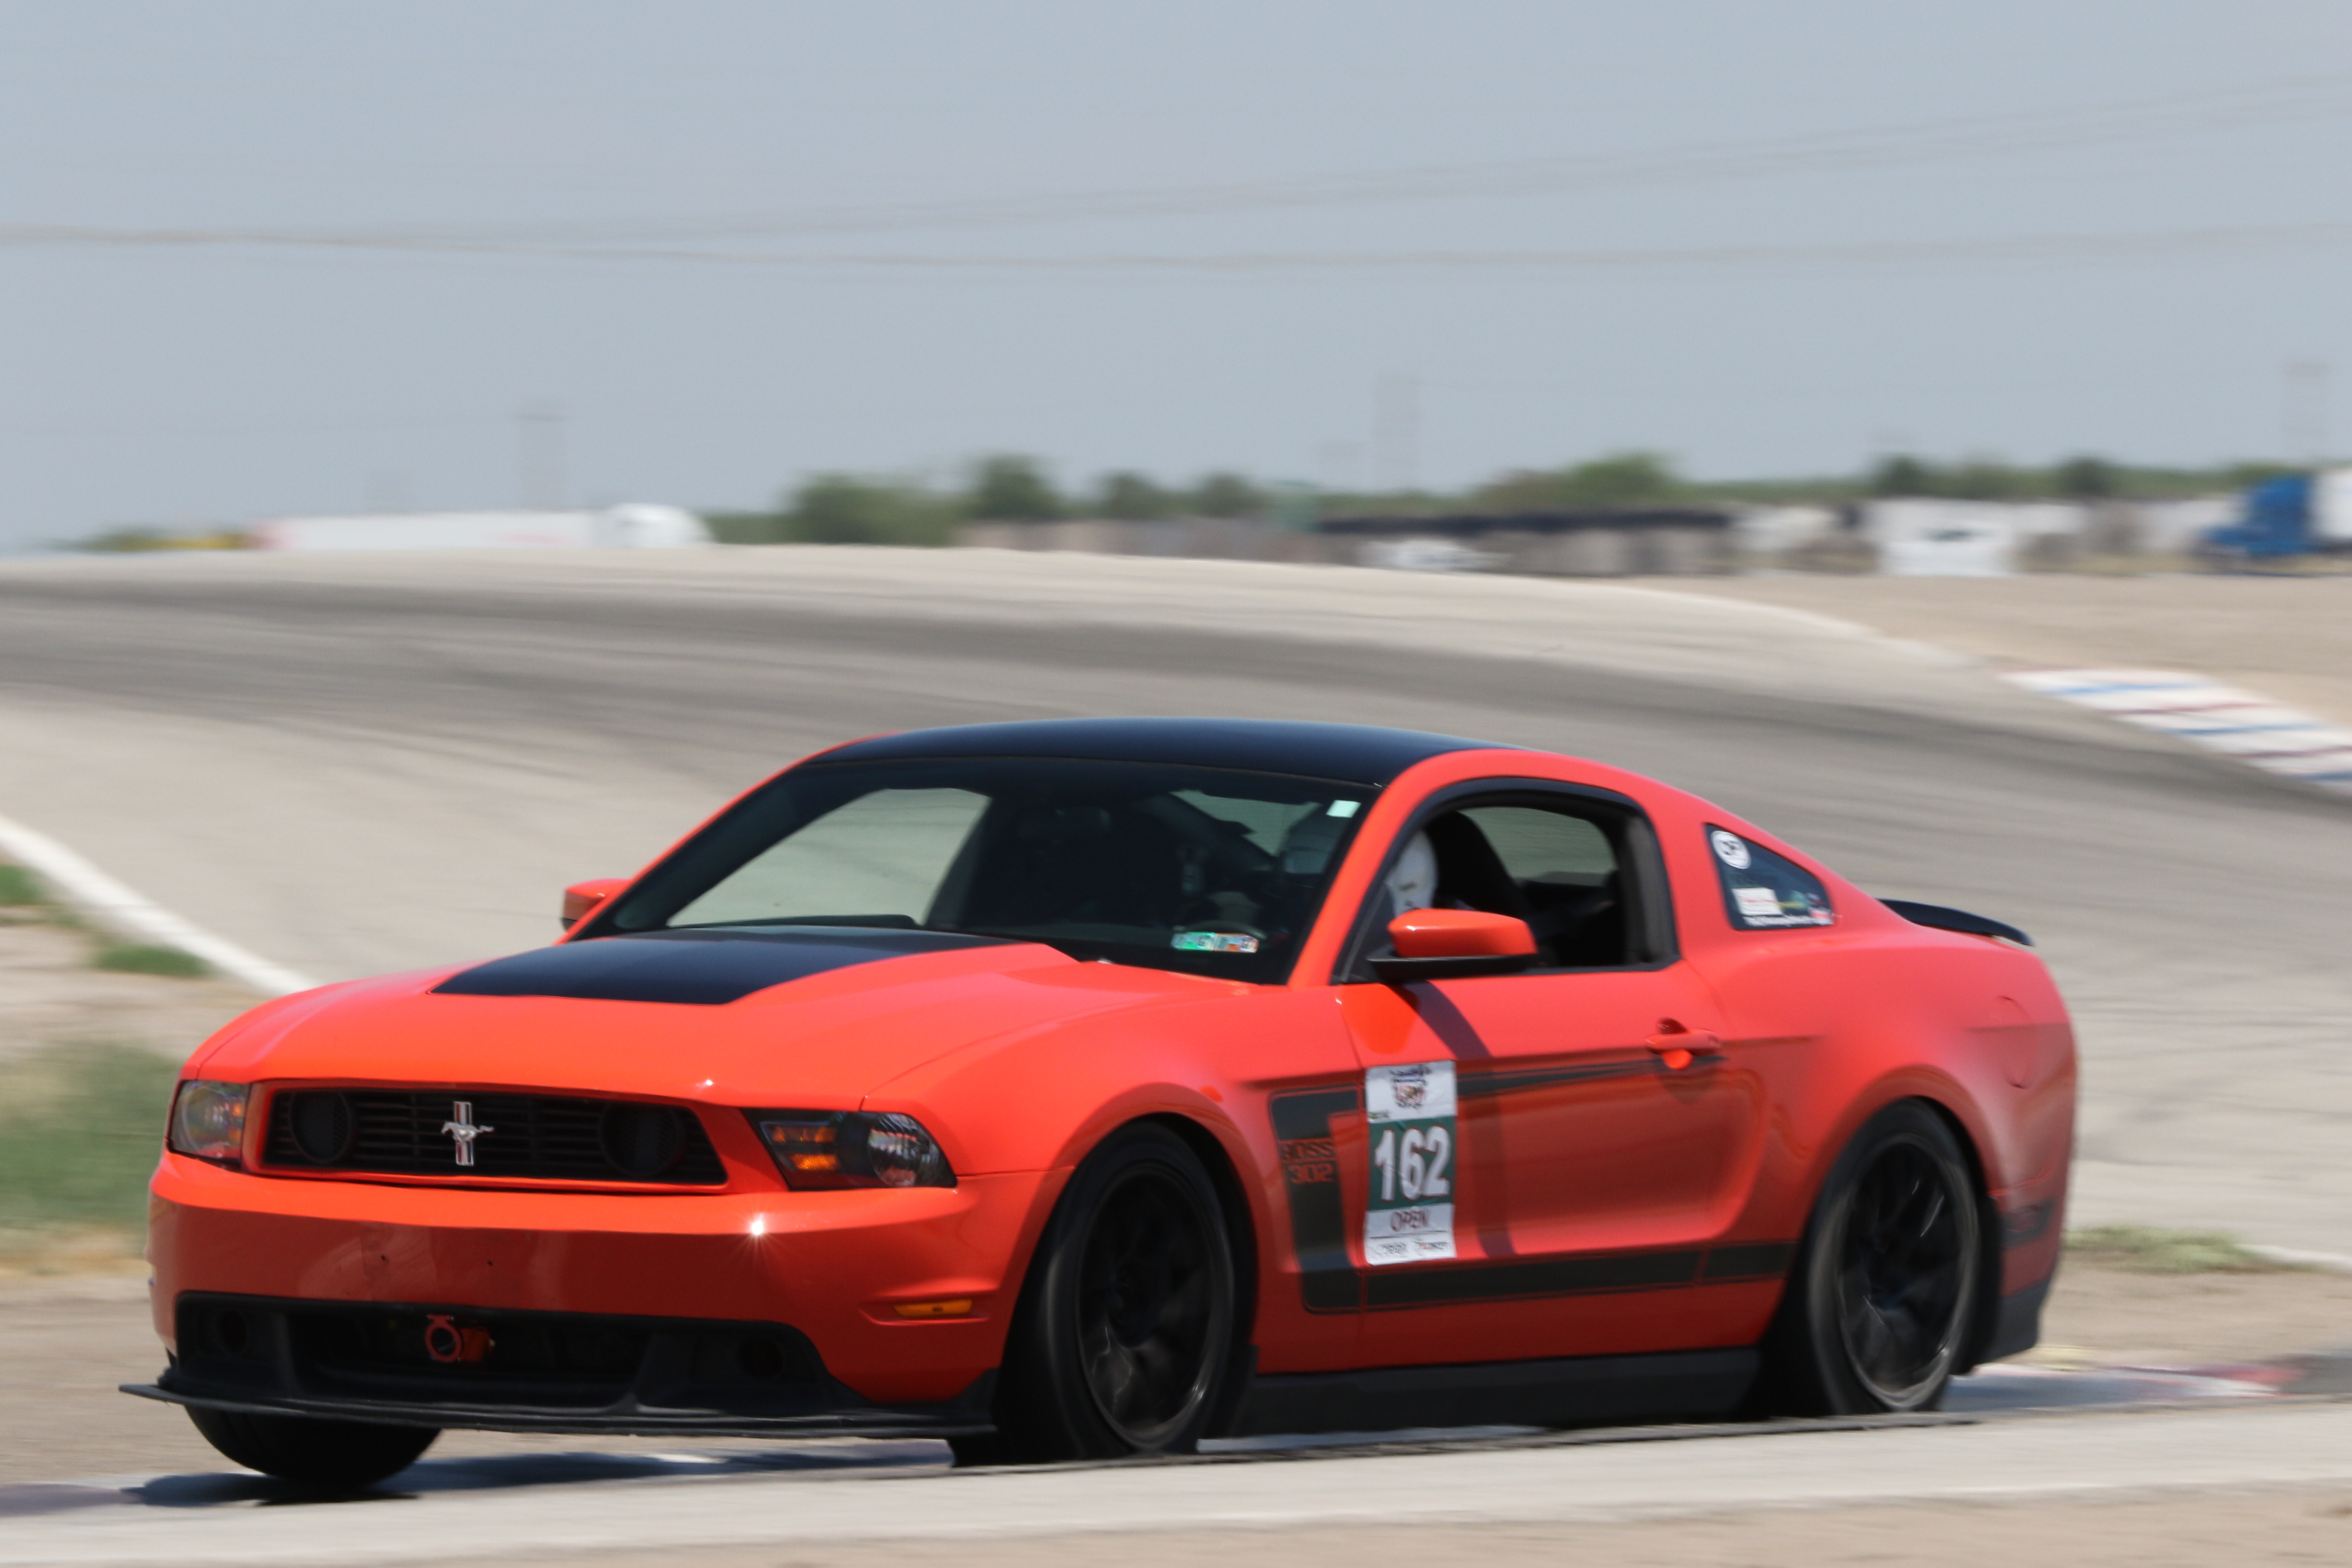 HPDE/Track - Track and Touge Boss Vehicle Profile - S197 Mustangs